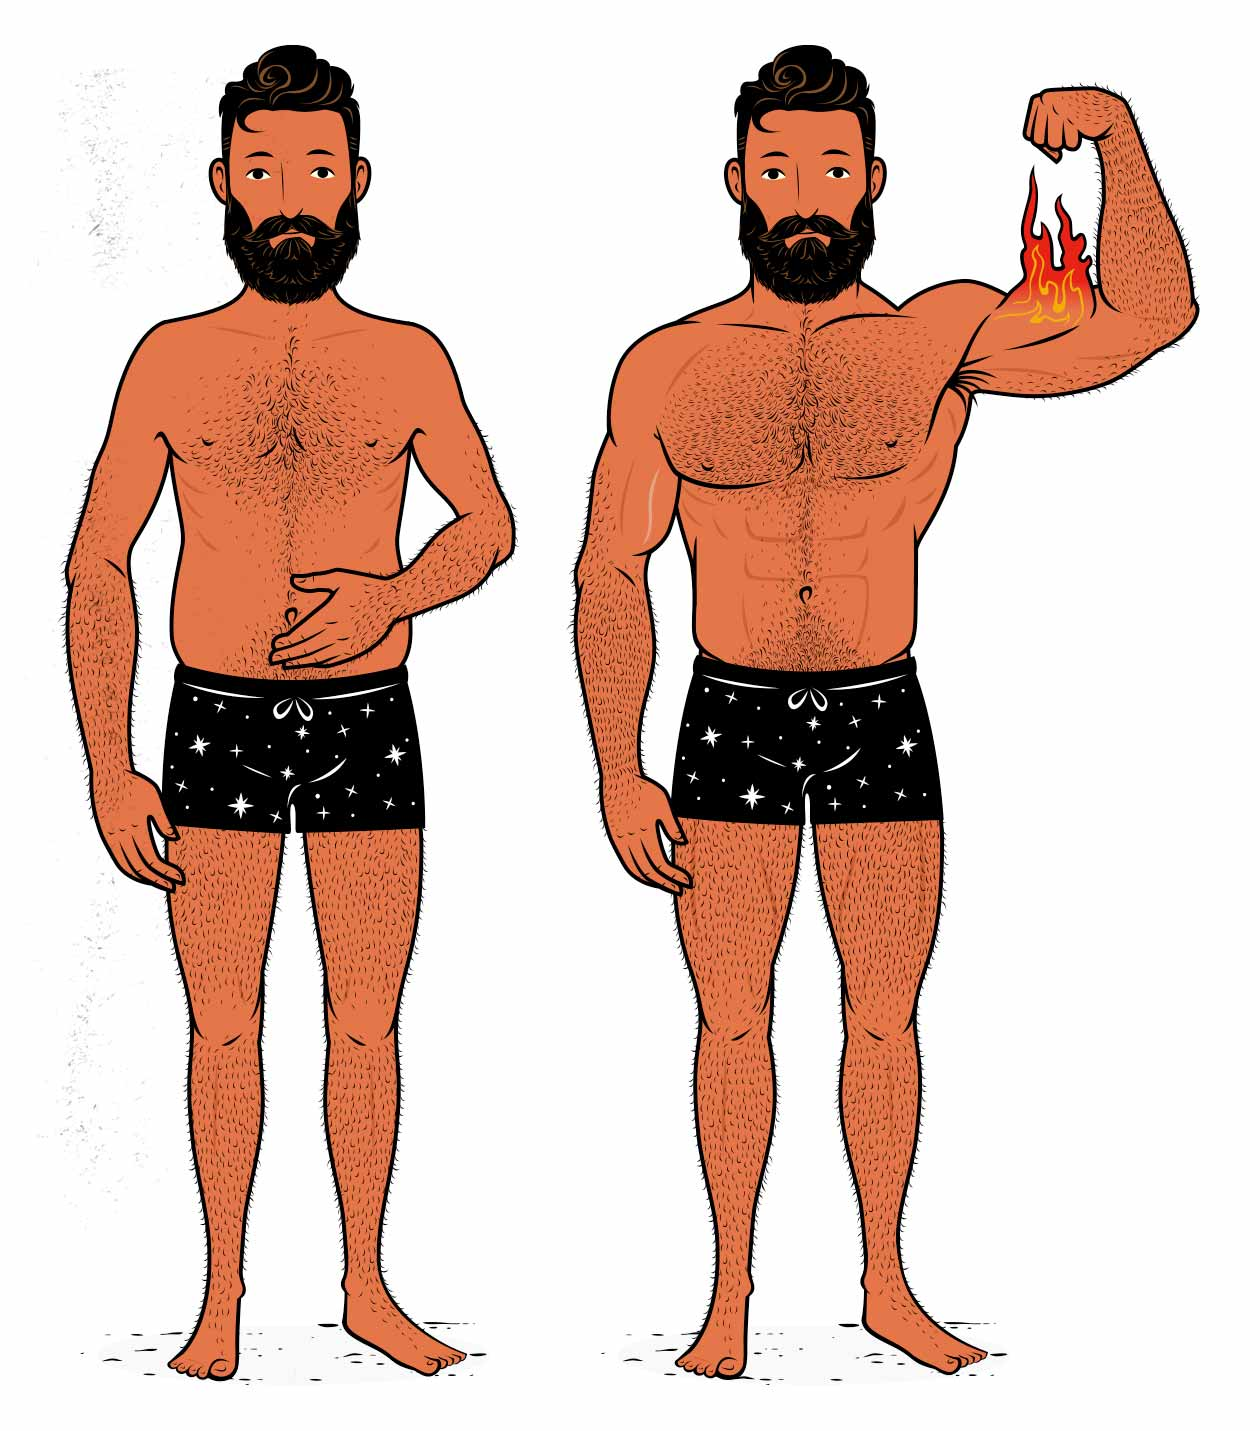 Illustration of a man building muscle by optimizing his lifting tempo, lifting the weights explosively and then lowering them slowly and under control.